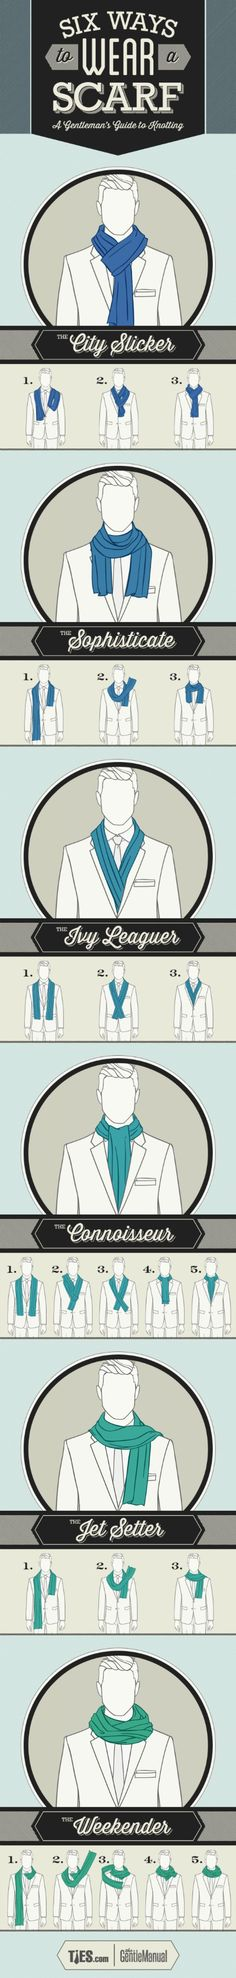 A Gentleman's Guide to Knotting